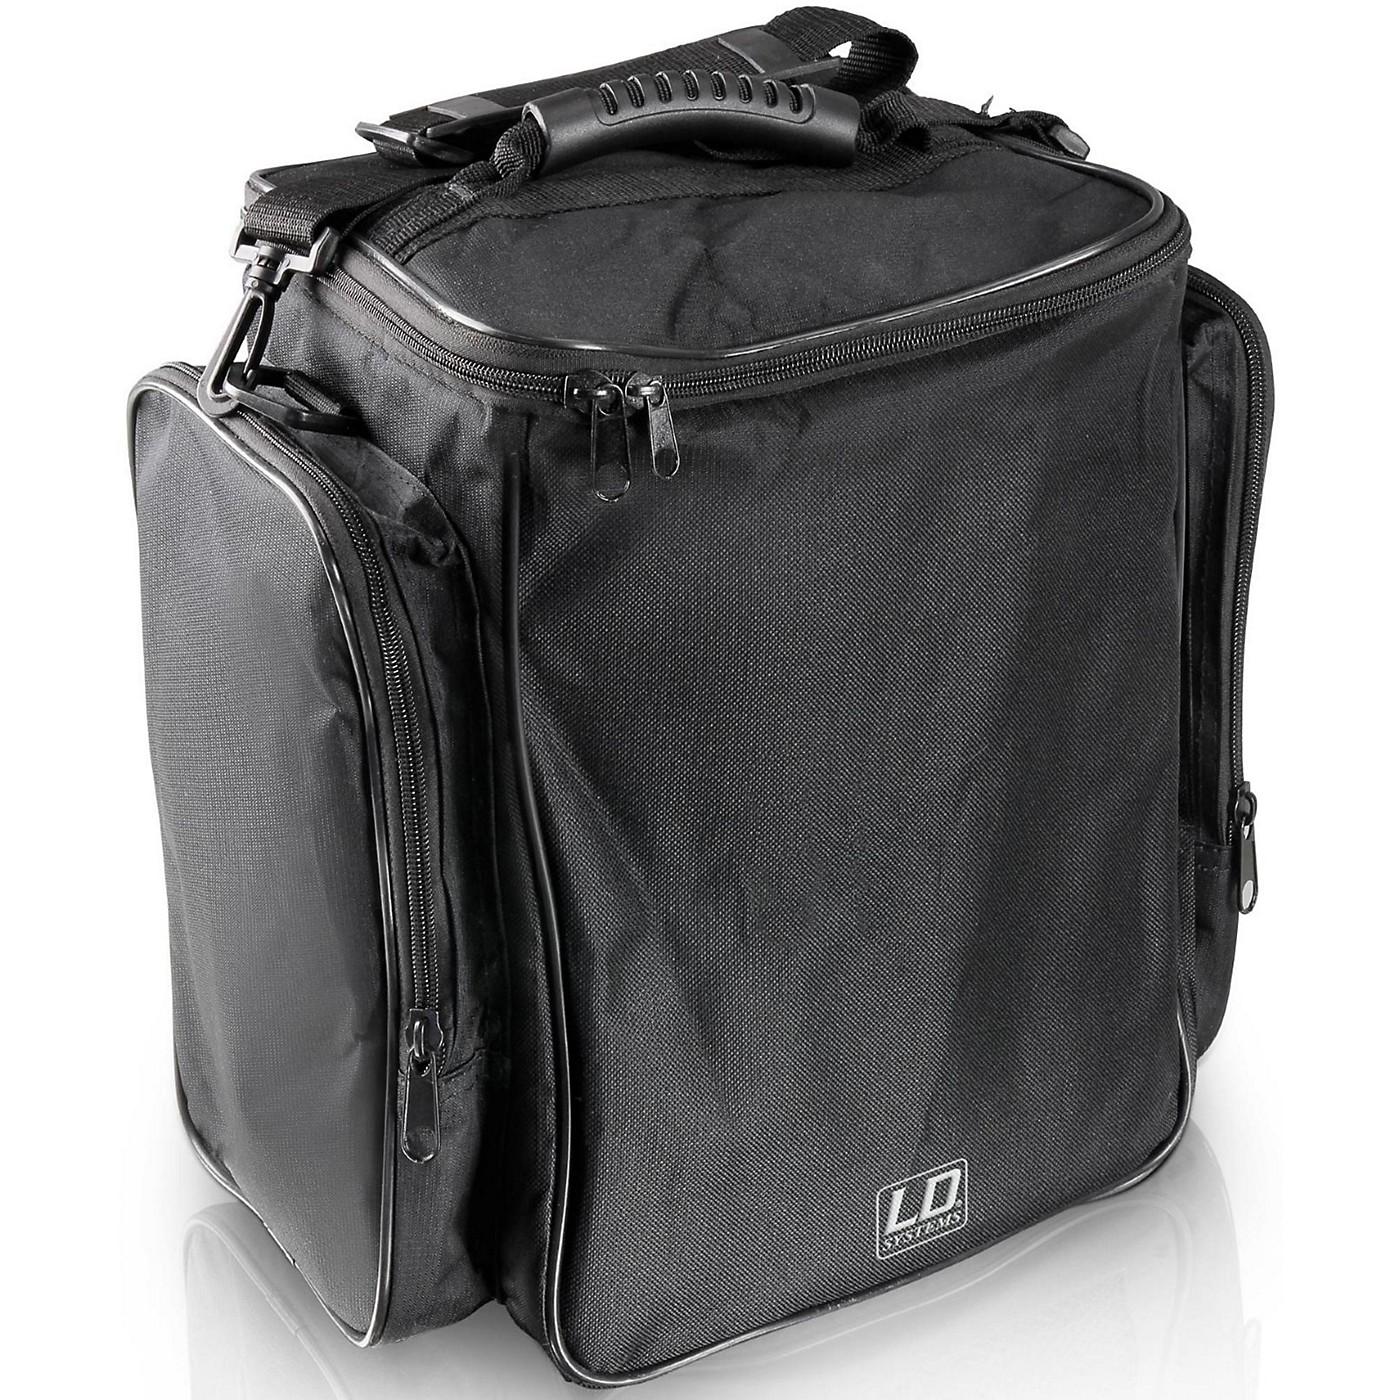 LD Systems STINGER MIX 6 G2 B Padded Carrying Case thumbnail